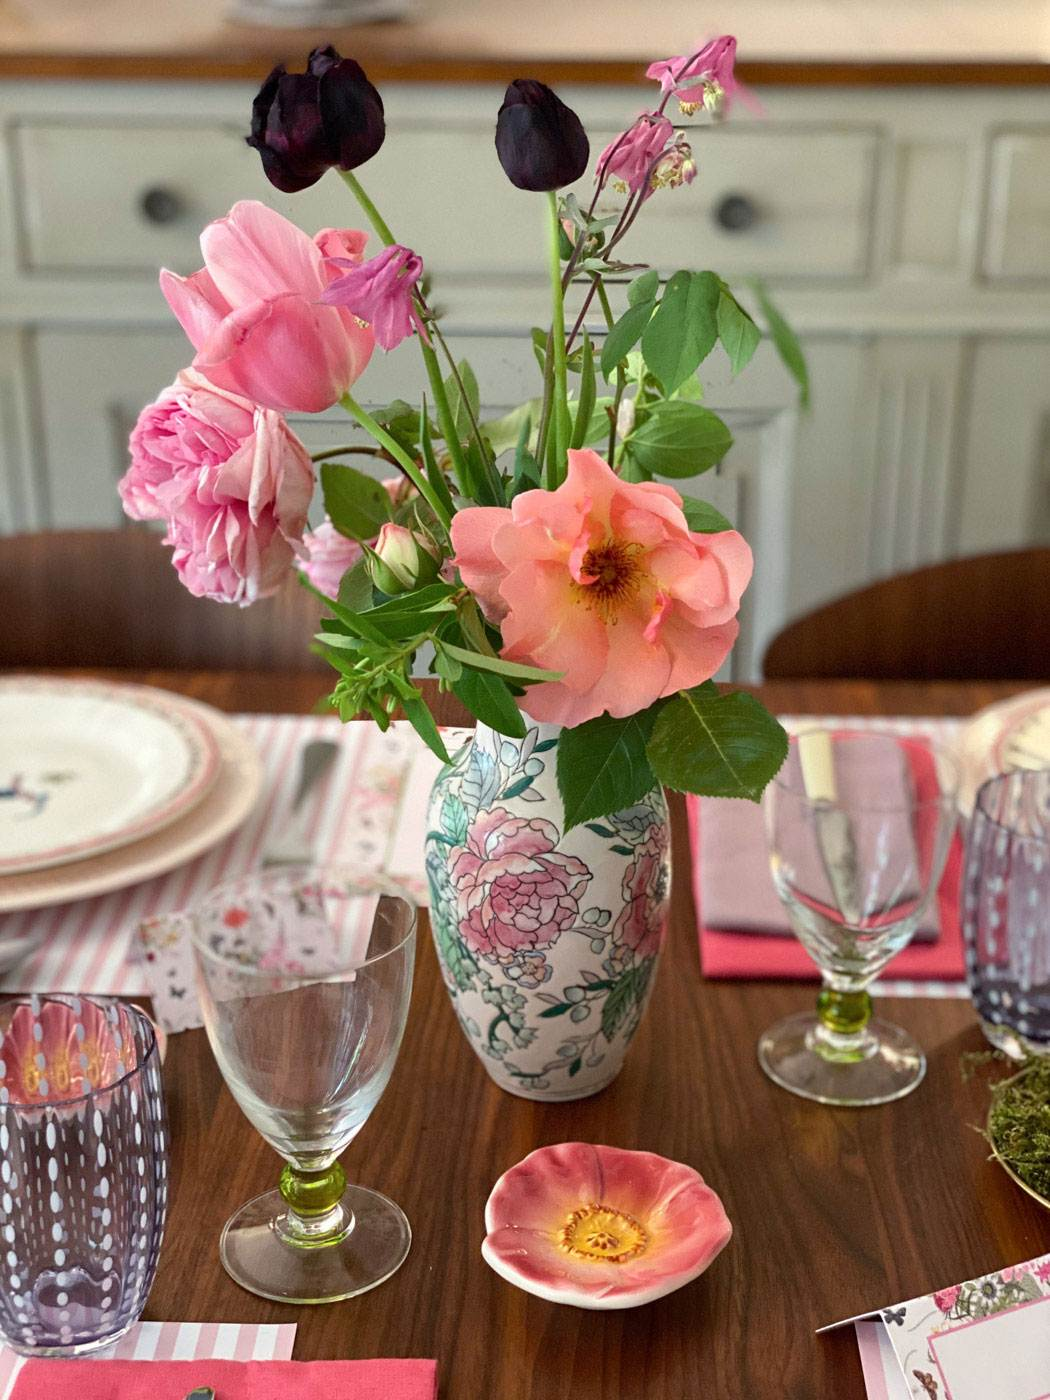 une-bonne-maison-french-lifestyle-blog-spring-tablescape-lockdown-paris-08